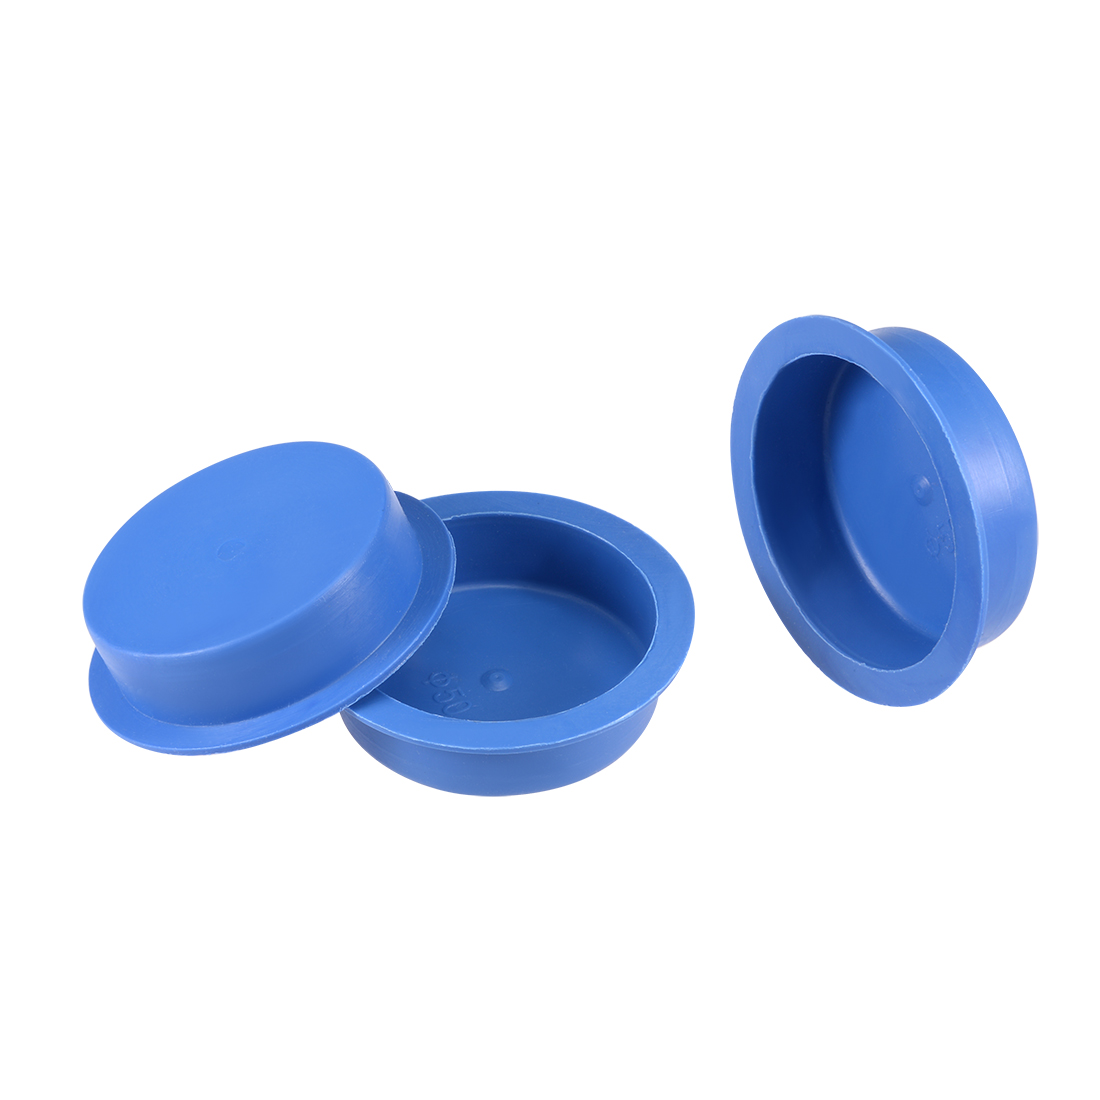 10pcs PE 50mm x 15mm Round Head Hole Stoppers Waterproof Tapered Caps Blue